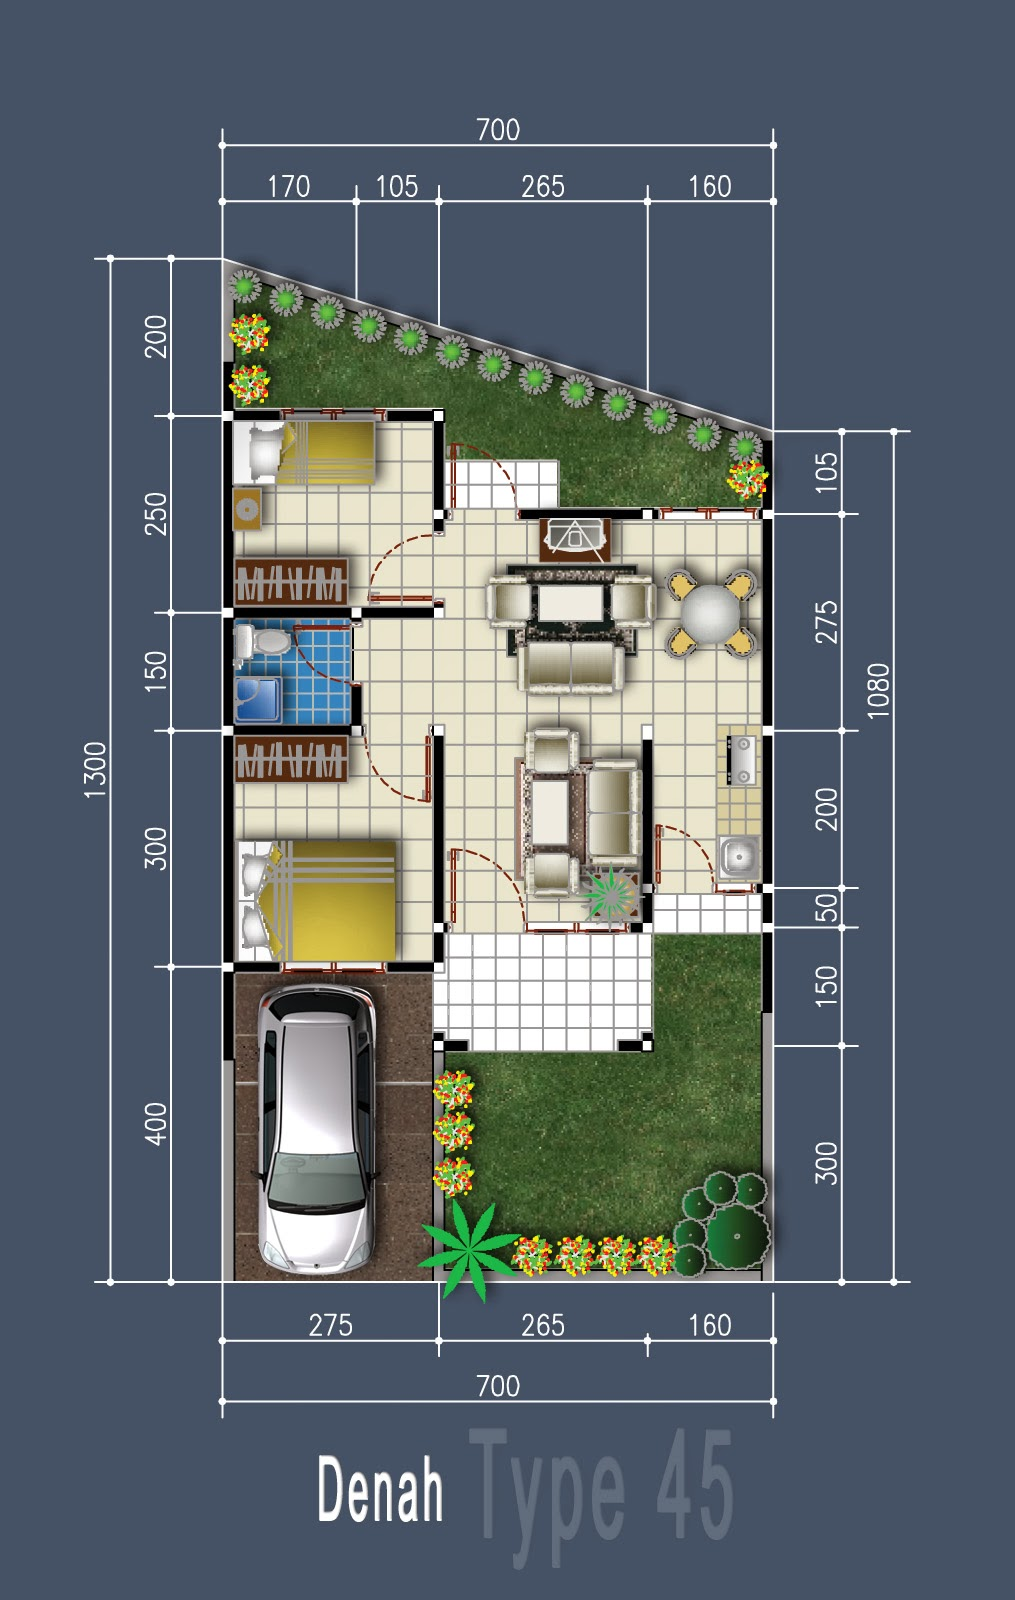 Minimalist house plan design type 45 info tazbhy for Minimalist house type 36